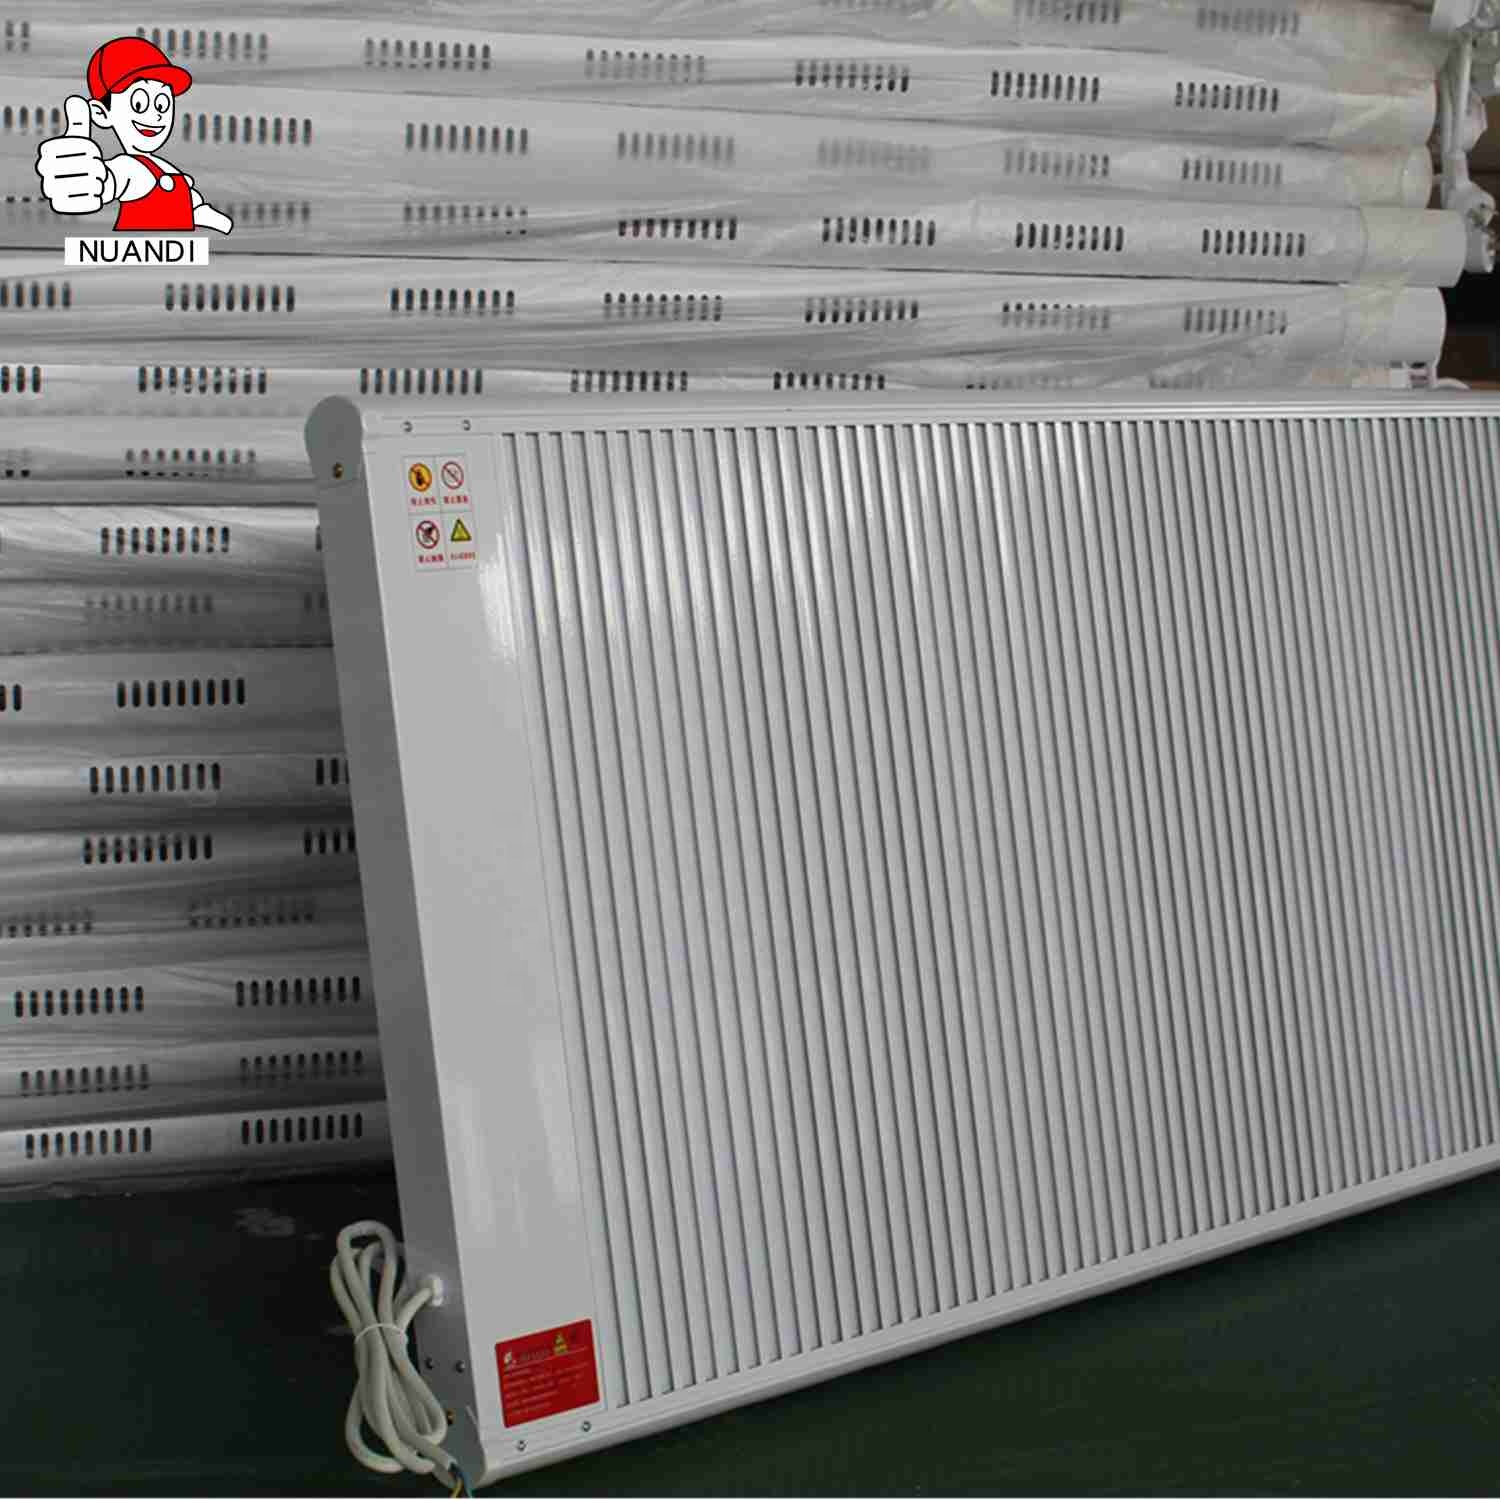 Instant Heat Infrared Panel Heaters for Room Heating in Winter